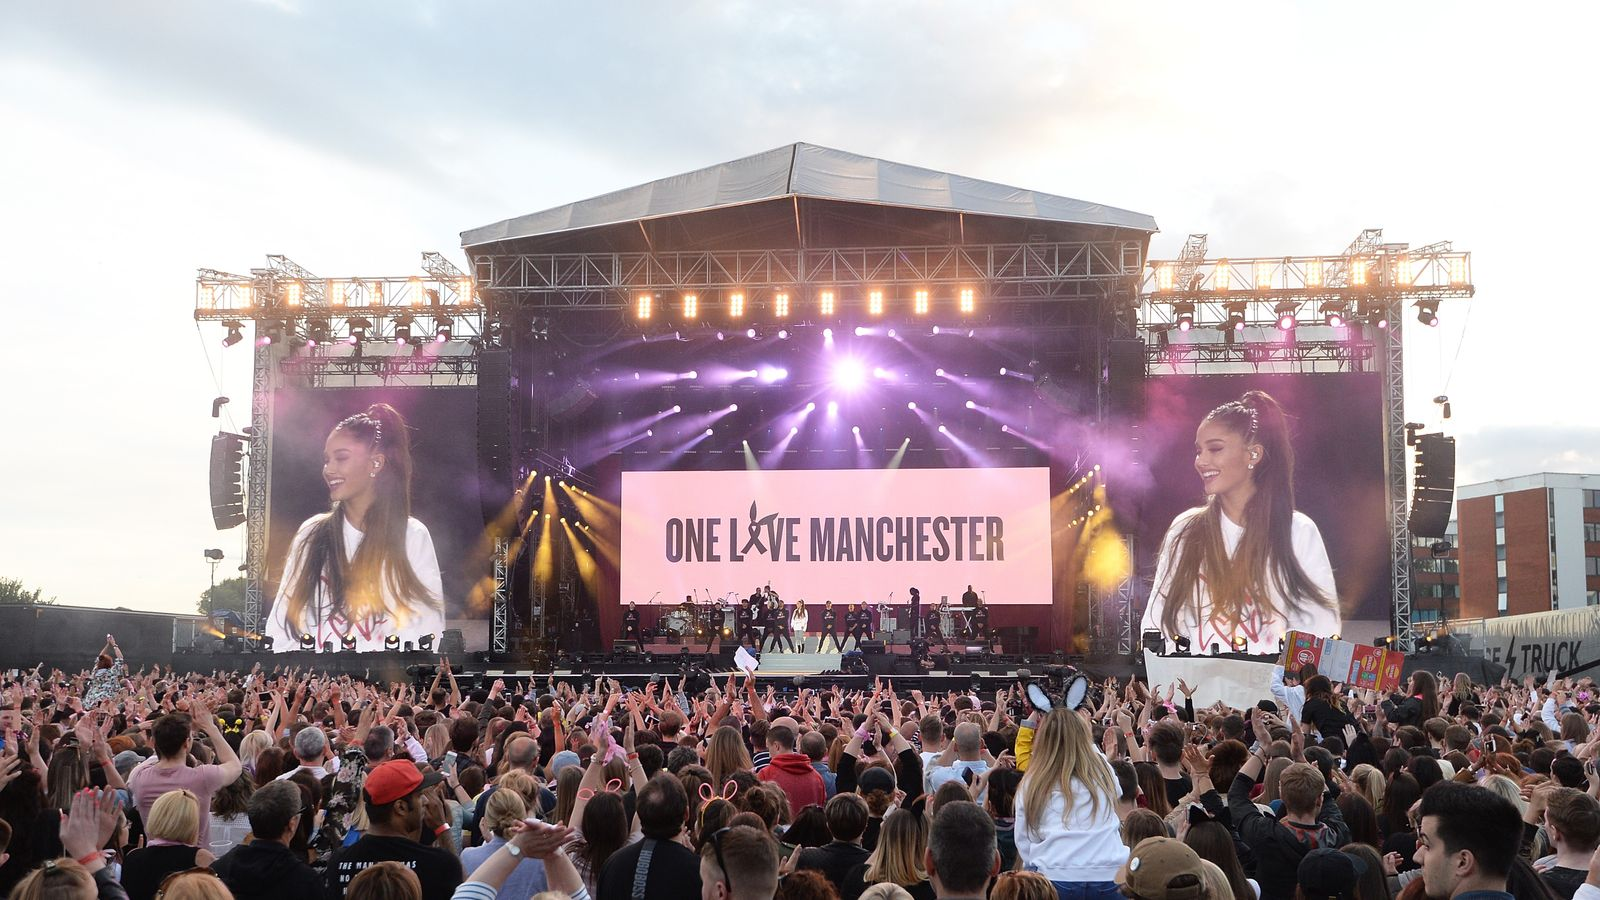 Ariana Grande, Niall Horan perform at 'One Love Manchester' benefit concert